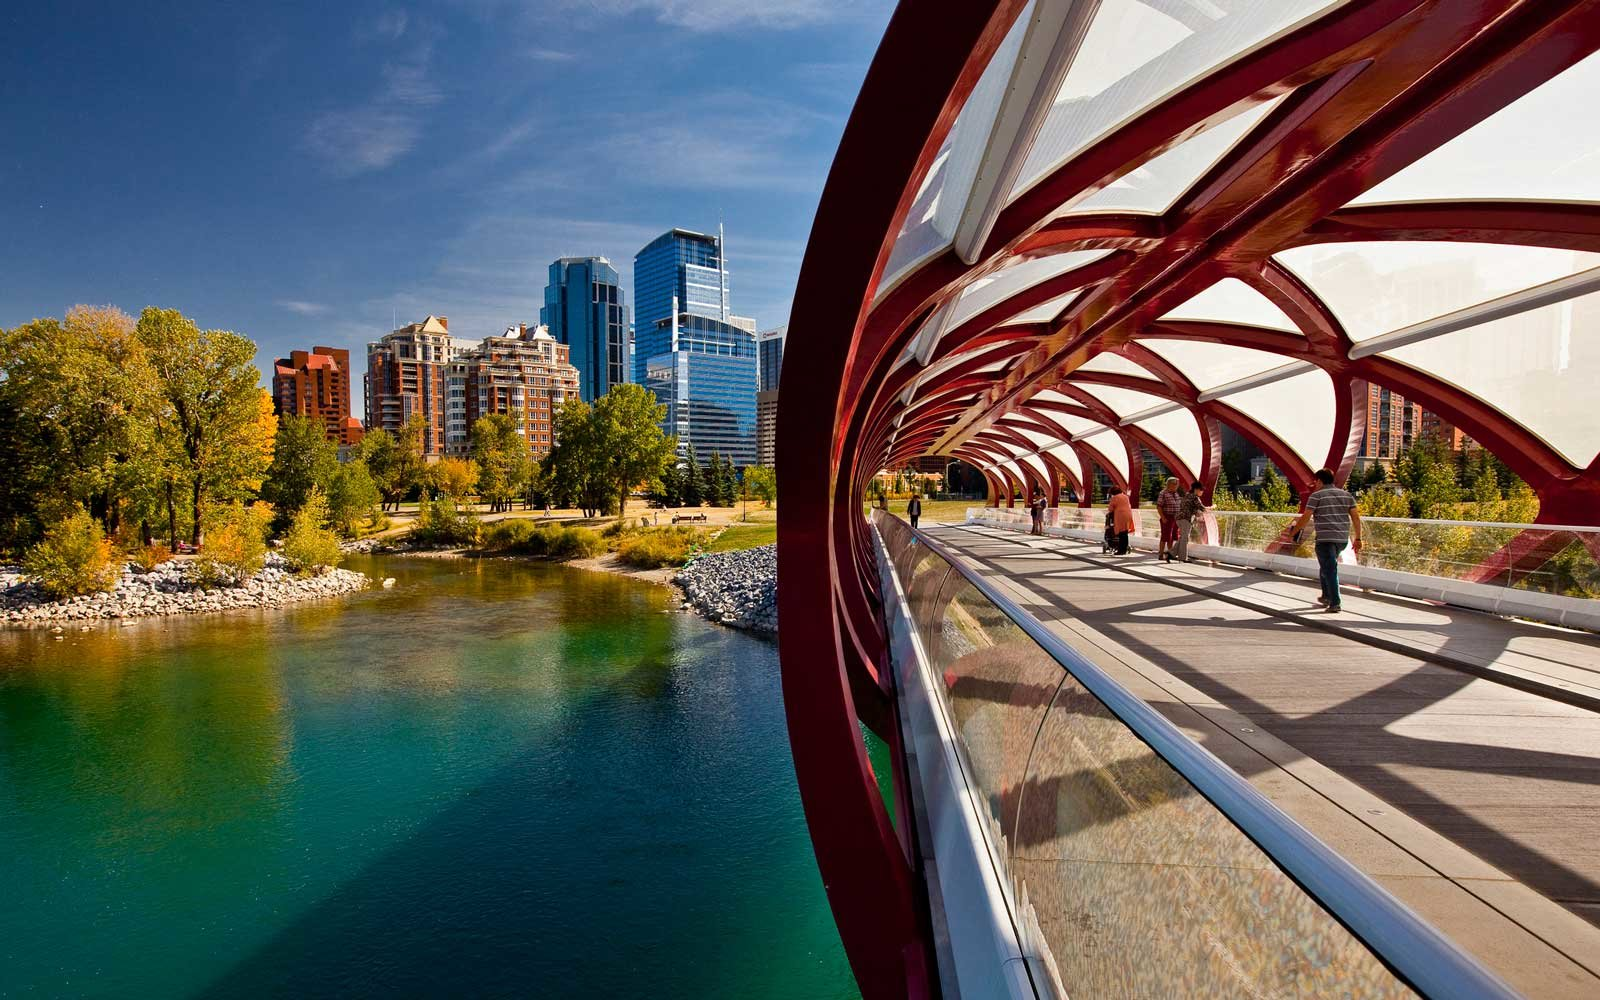 Calgary Peace Bridge and downtown highrise buildings, Calgary, Alberta, Canada.